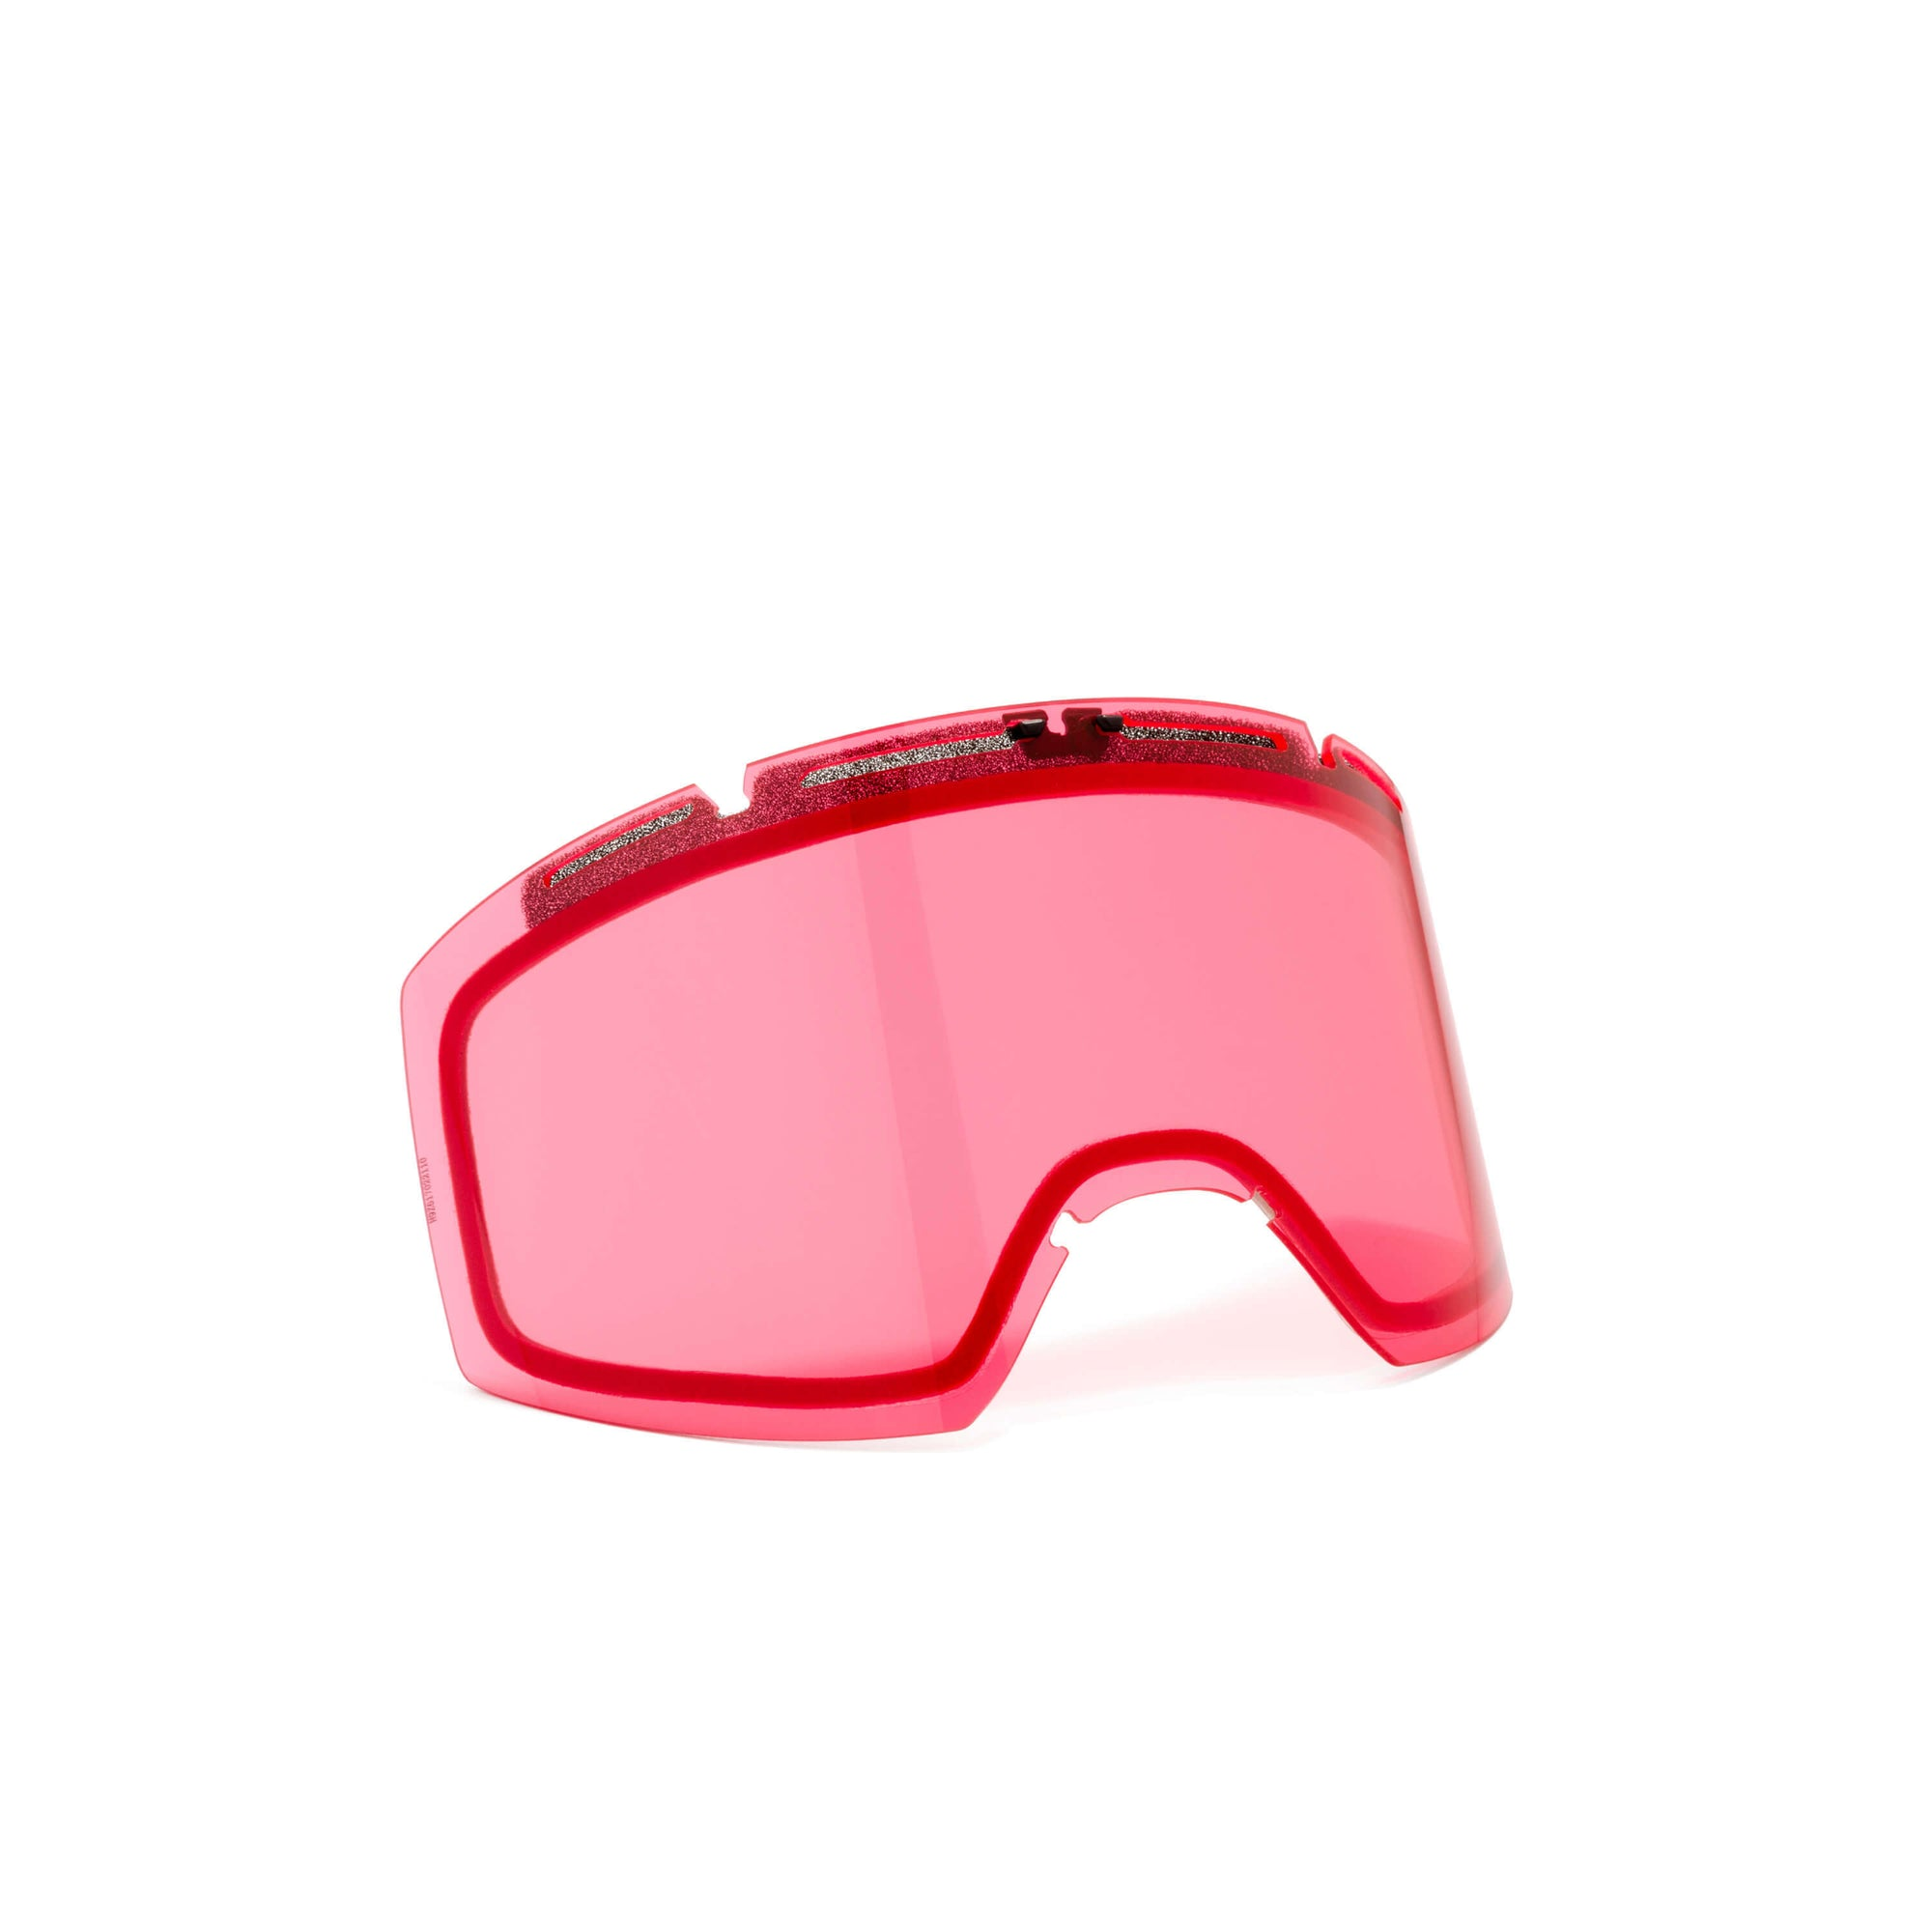 Amazify Double Lens Ruby - Spare Lenses